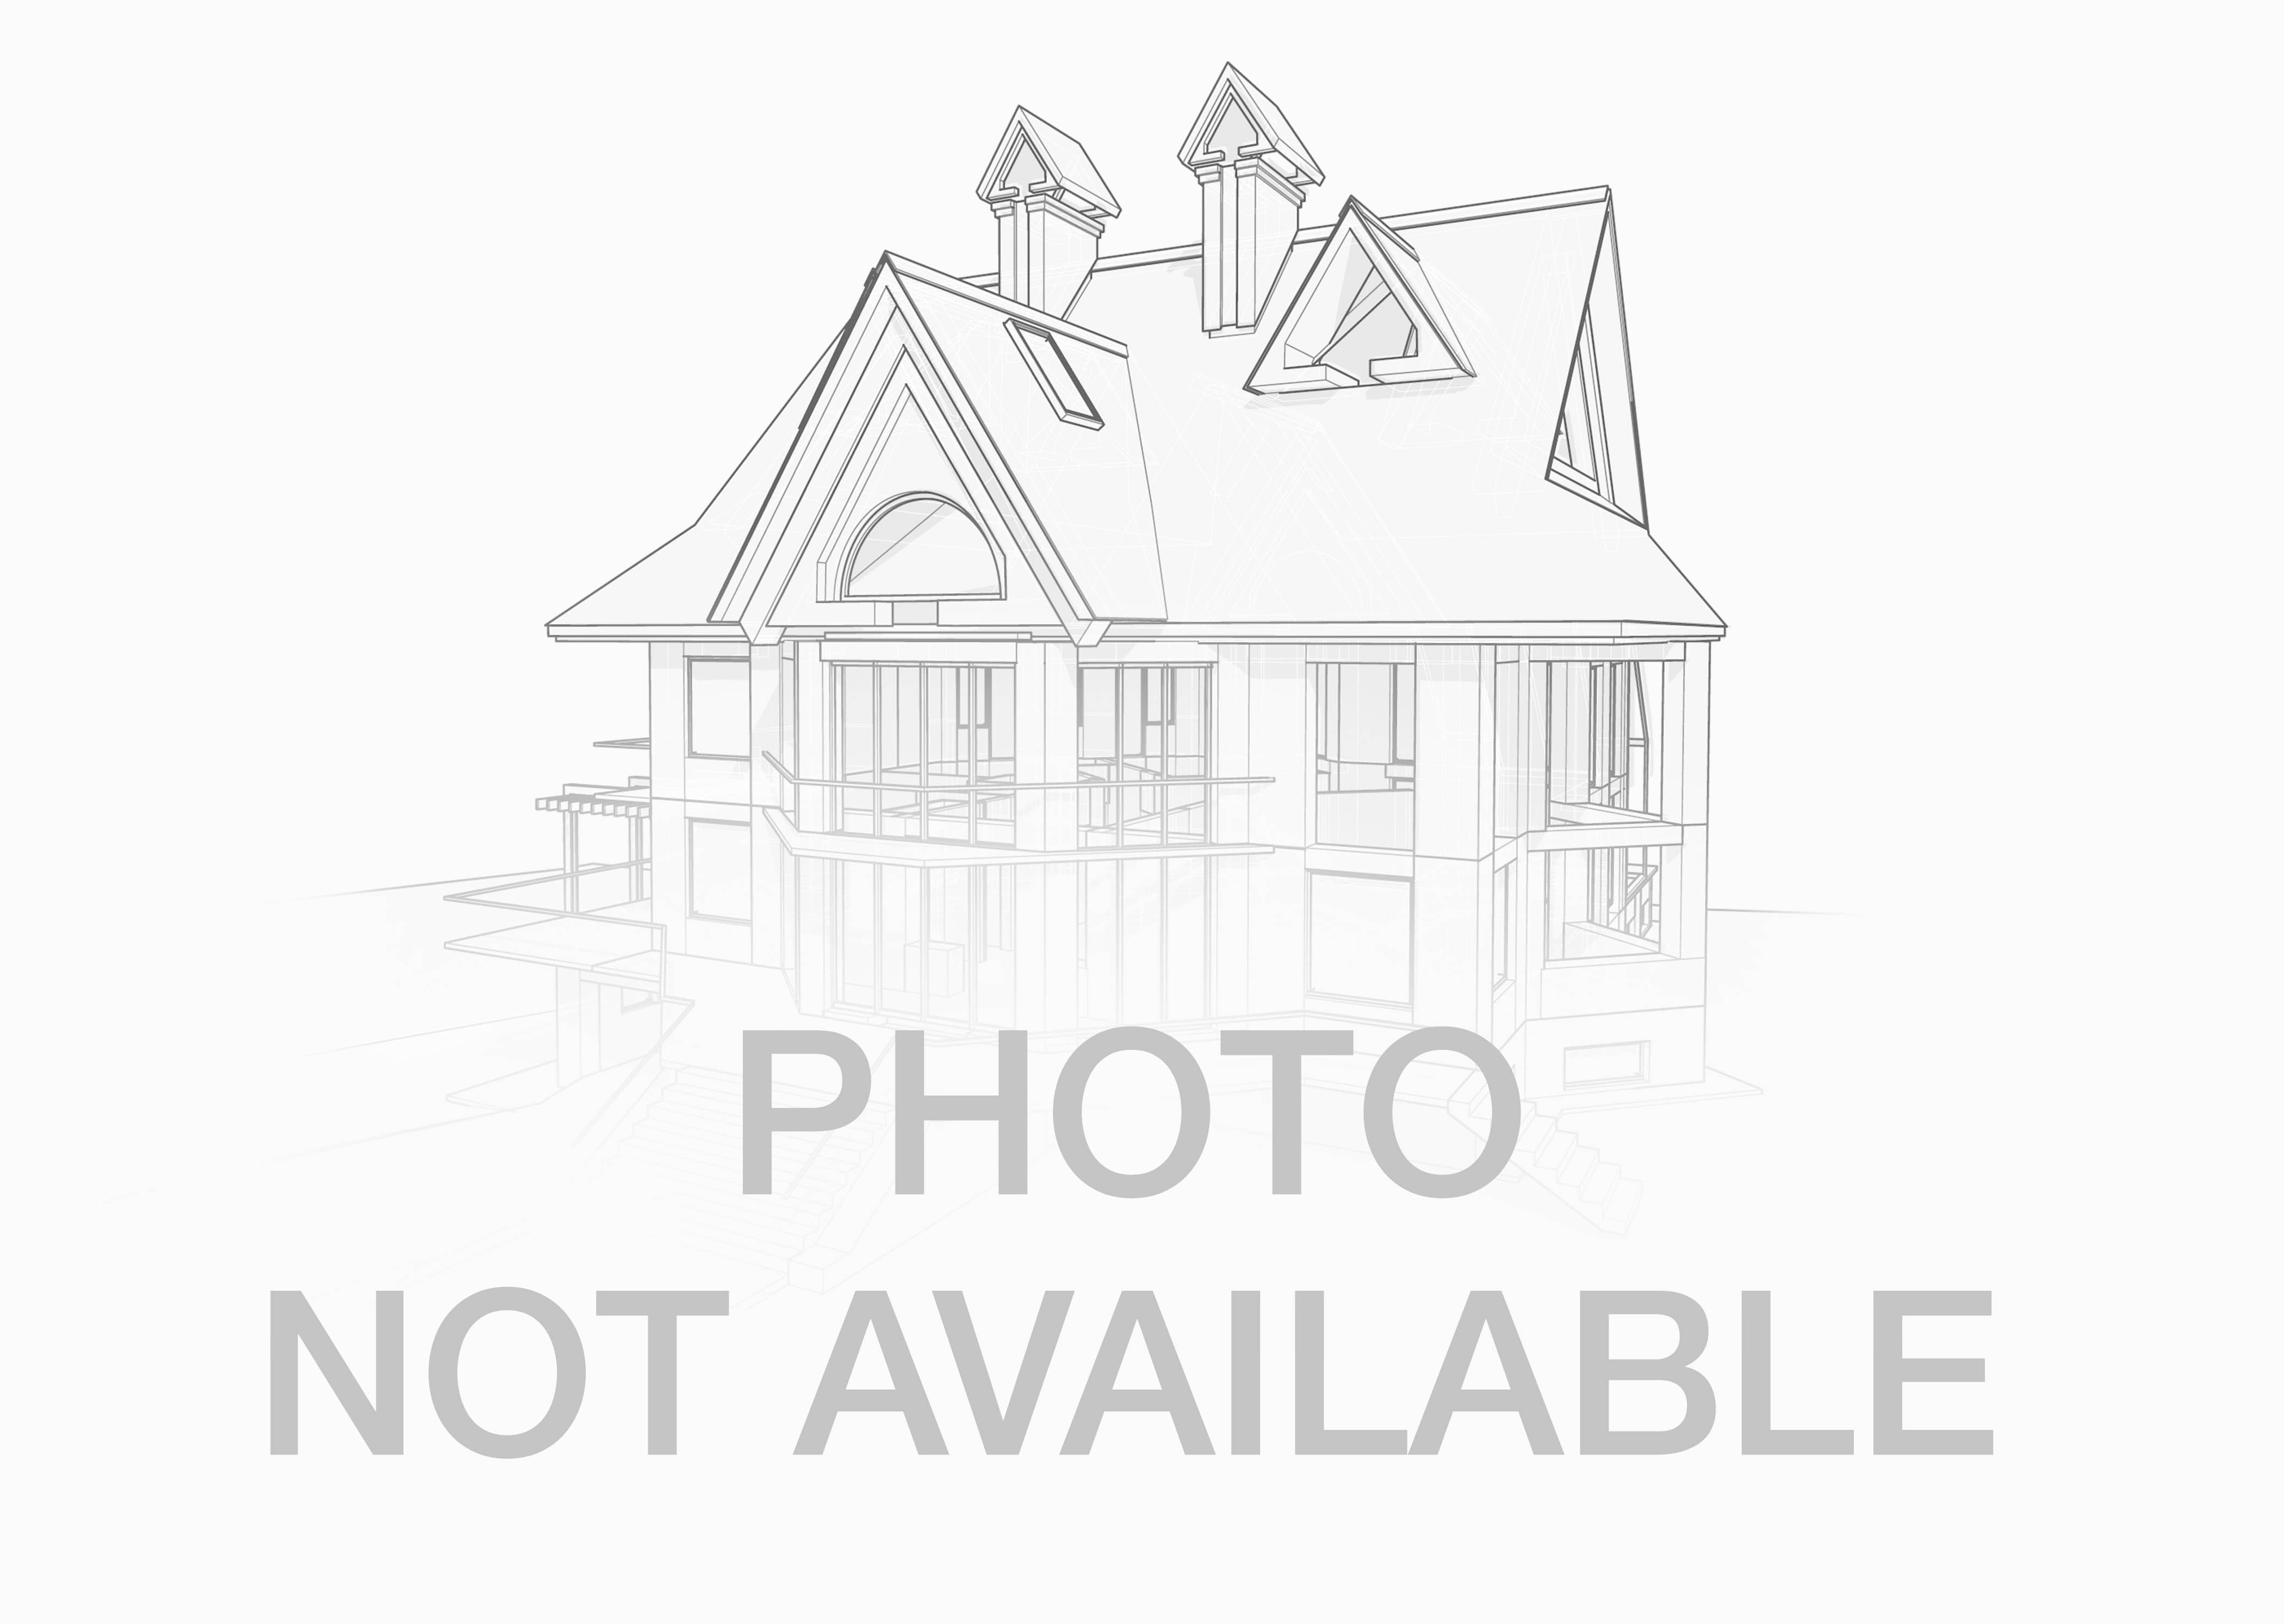 va homes for sale and real estate